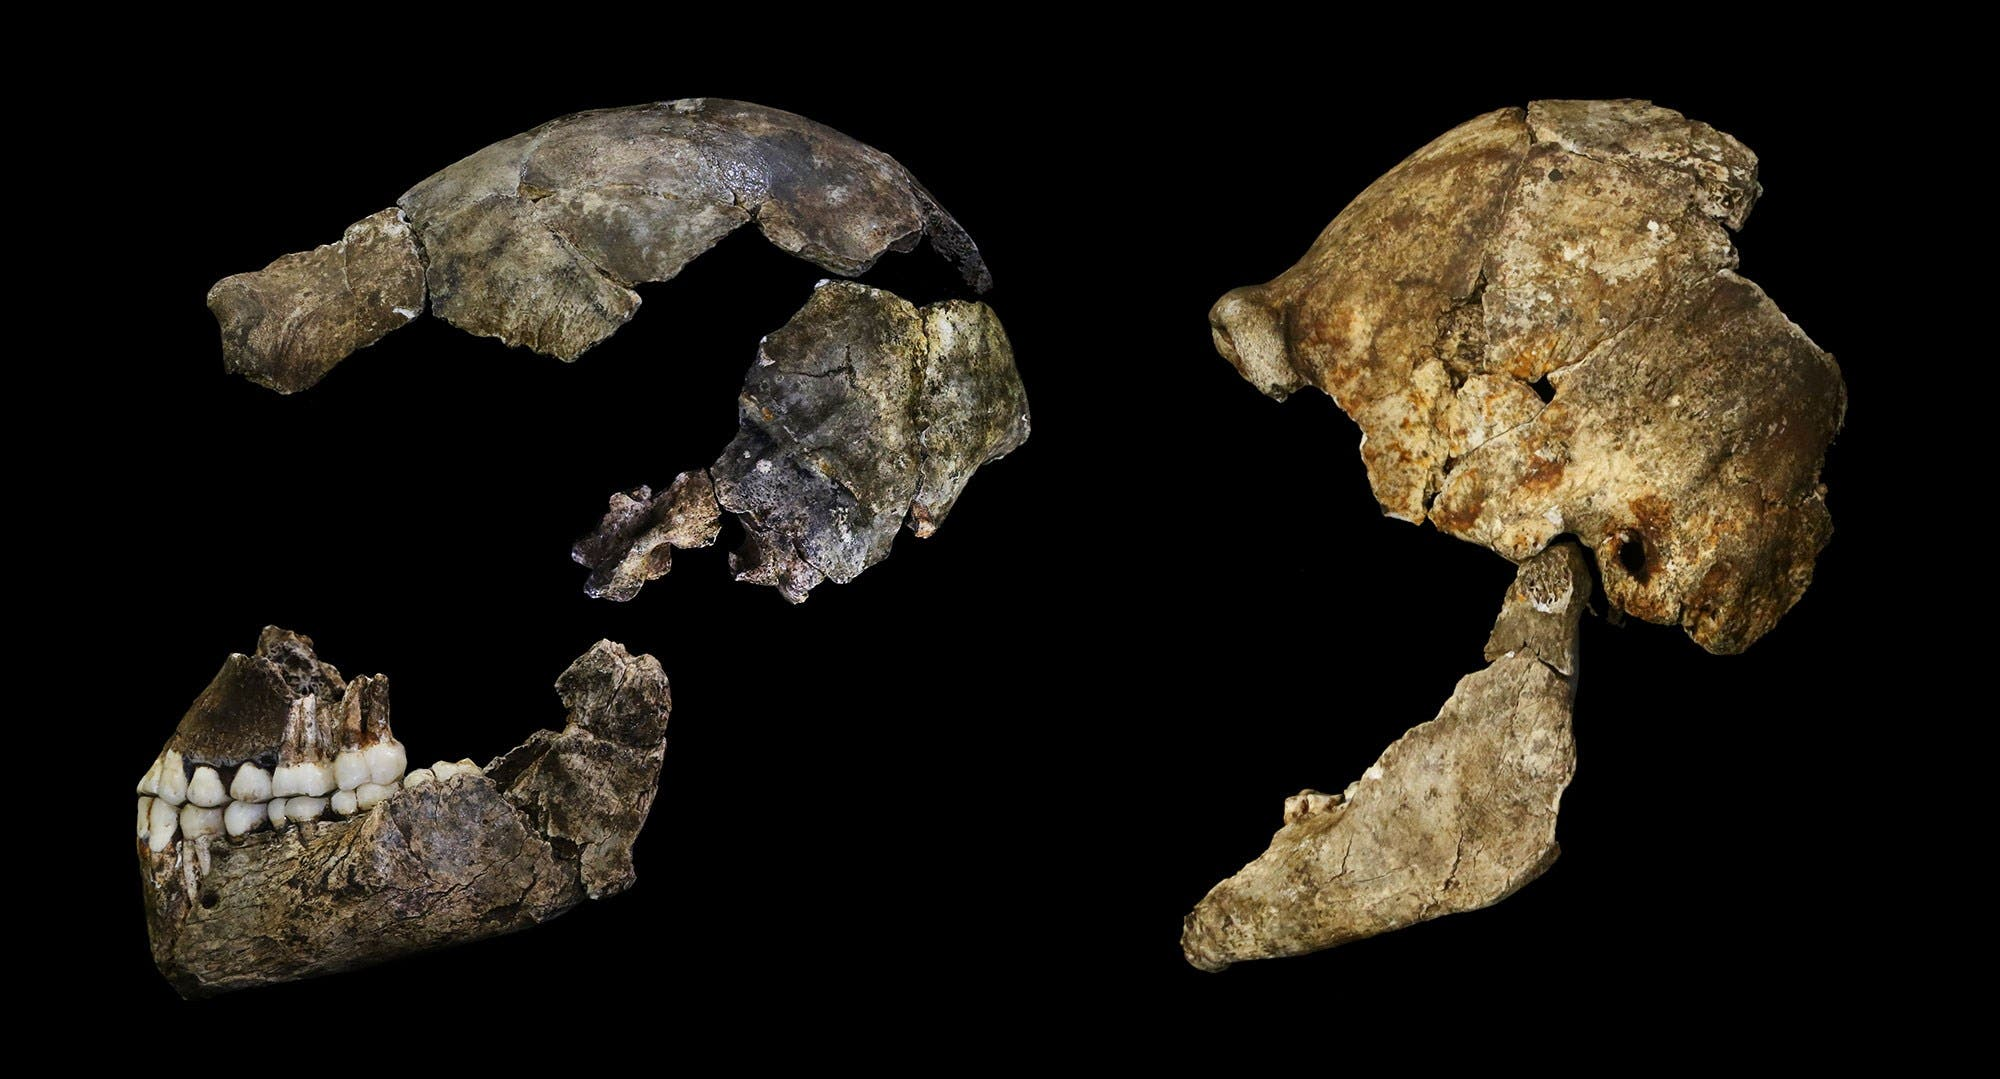 SAFRICA04 - Johannesburg, -, SOUTH AFRICA : A hand out image made available by the University of the Witwatersrand, shows Crania of Homo Naledi are pictured in the Wits bone vault at the Evolutionary Studies Institute at the University of the Witwatersrand, Johannesburg, on September 7, 2015. The fossils are among nearly 1,700 bones and teeth retrieved from a nearly inaccessible cave near Johannesburg. The fossil trove was created, scientists believe, by Homo naledi repeatedly secreting the bodies of their dead companions in the cave. Analysis of the fossils -- part of a project known as the Rising Star Expedition -- was led in part by paleoanthropologist John Hawks, professor of anthropology at the University of Wisconsin-Madison. AFP PHOTO/HO/ WITS UNIVERSITY/JOHN HAWKS